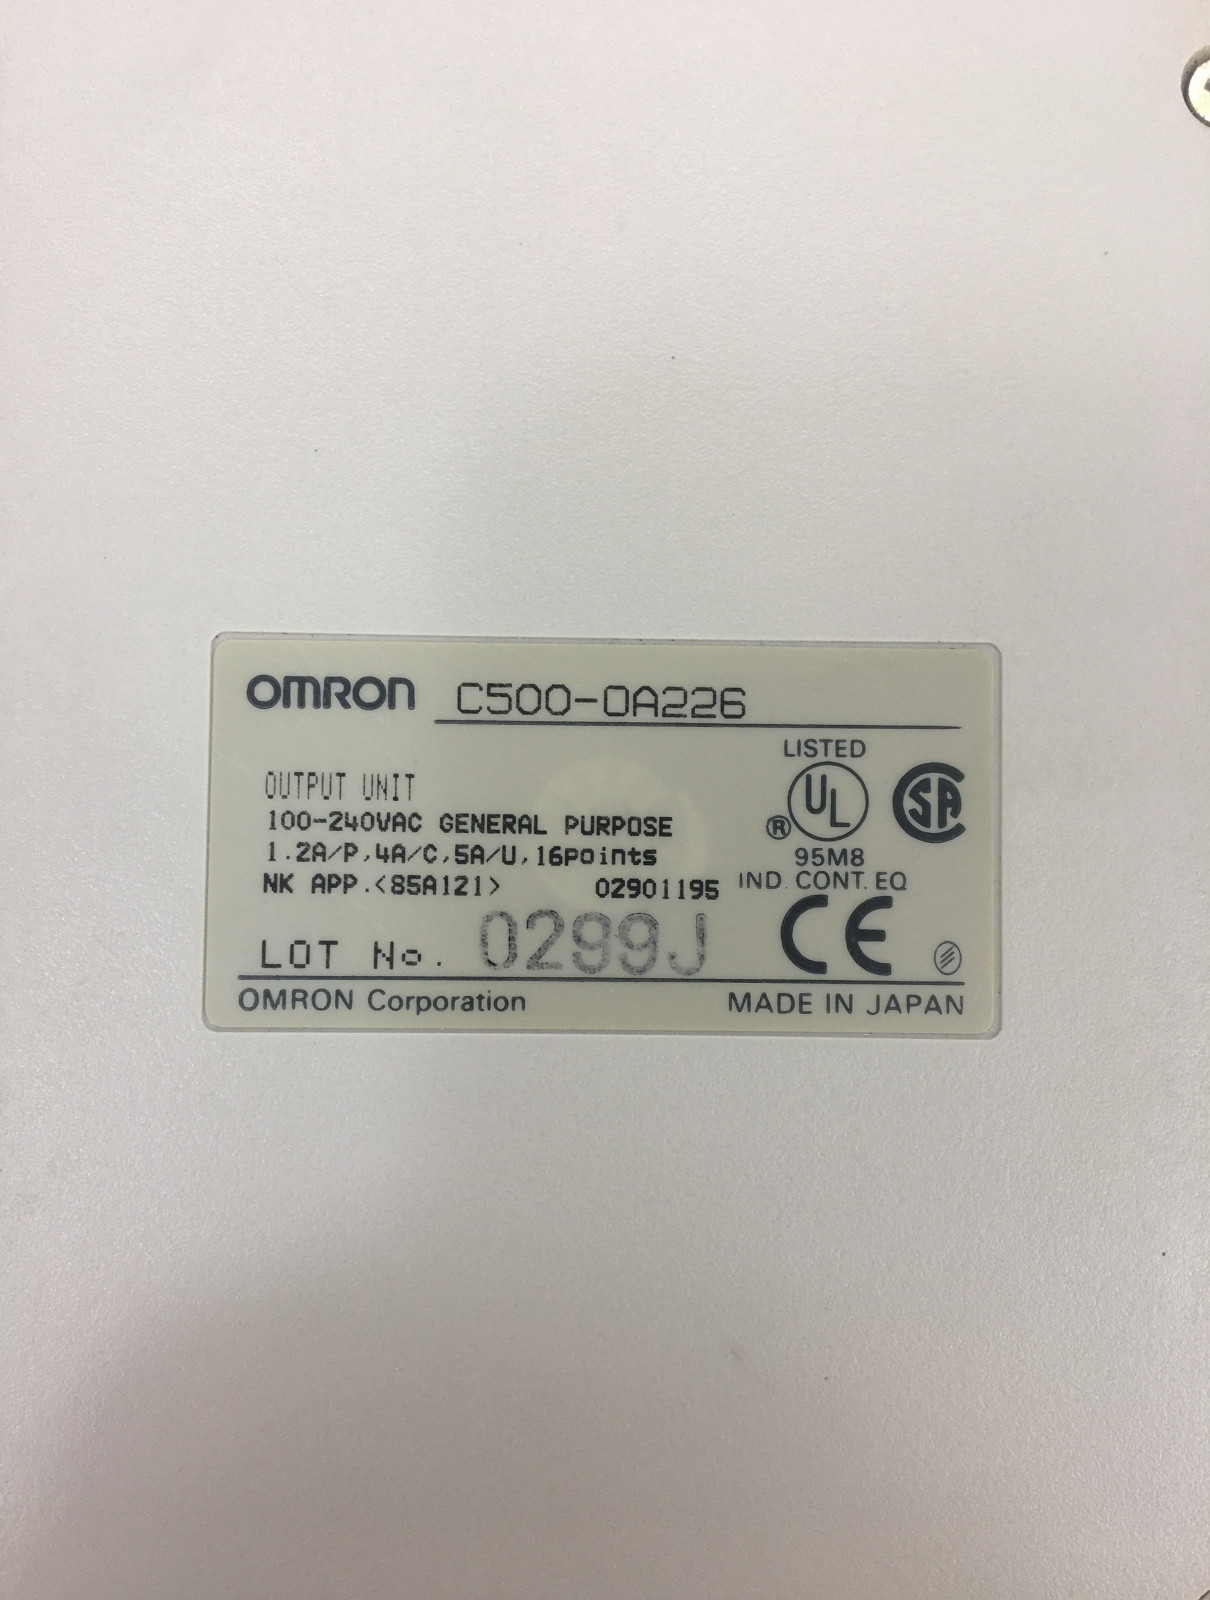 OMRON C500-OA226 OUTPUT UNIT 100-240vac COVER MISSING